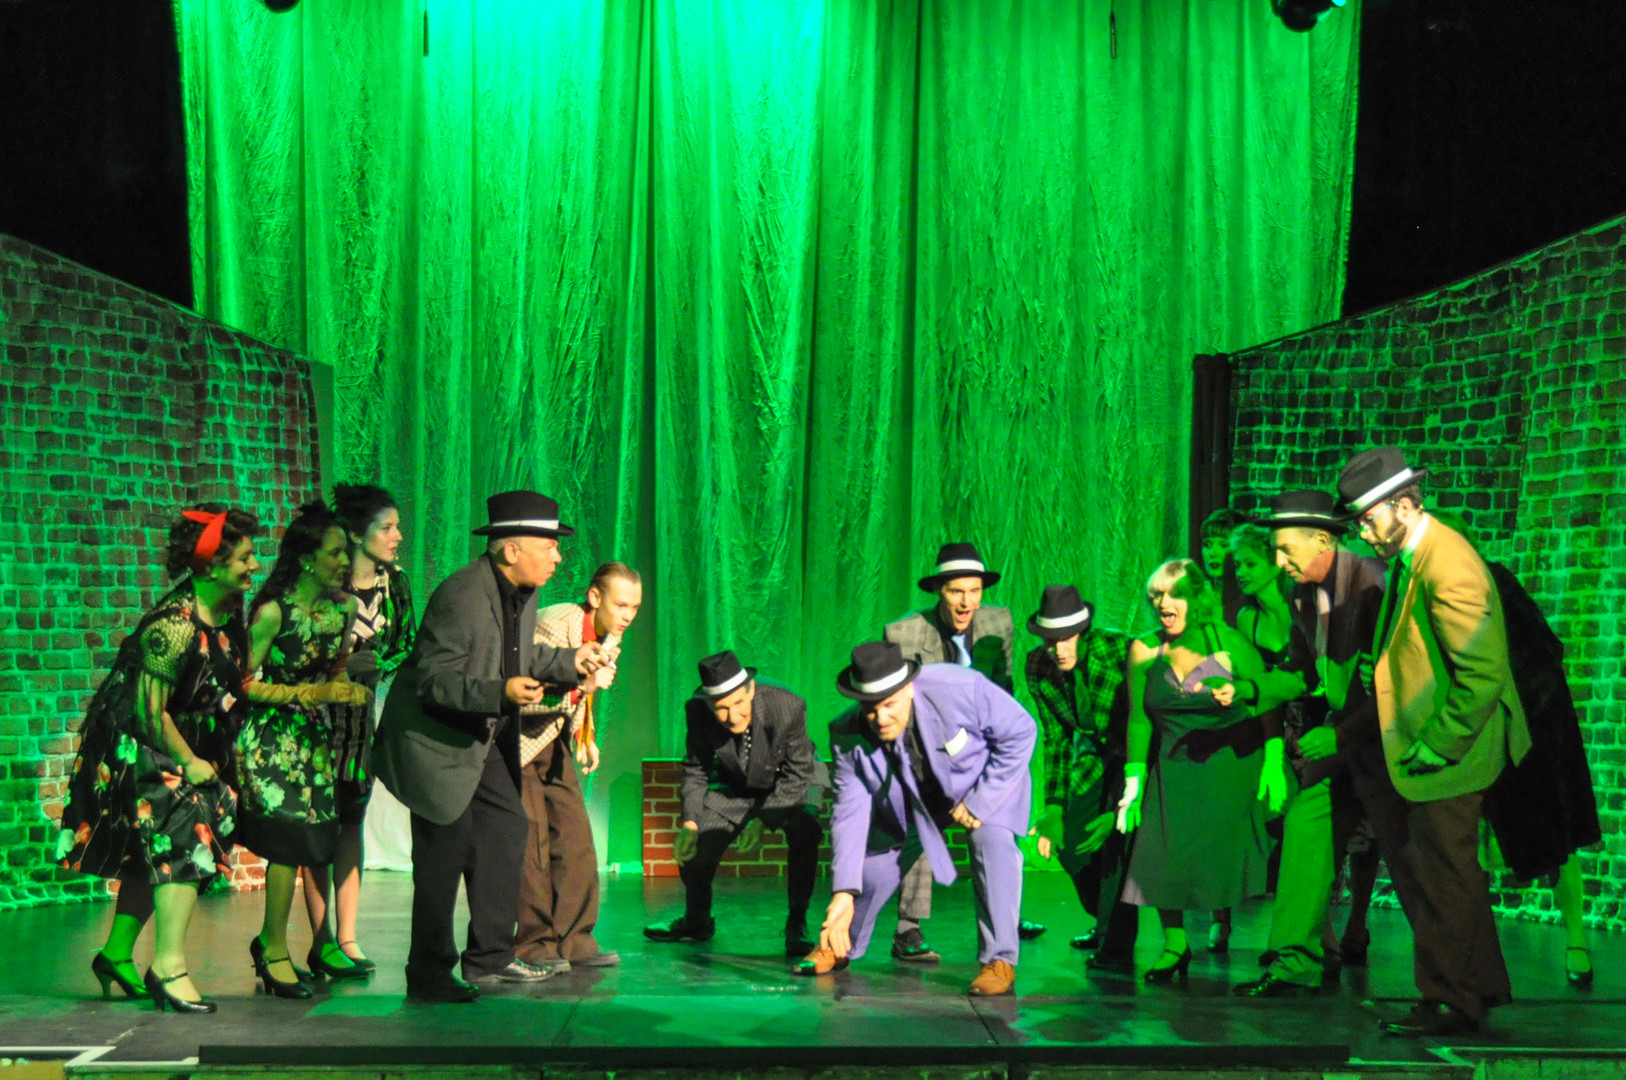 Guys & Dolls - Display 65 (54 of 65).jpg